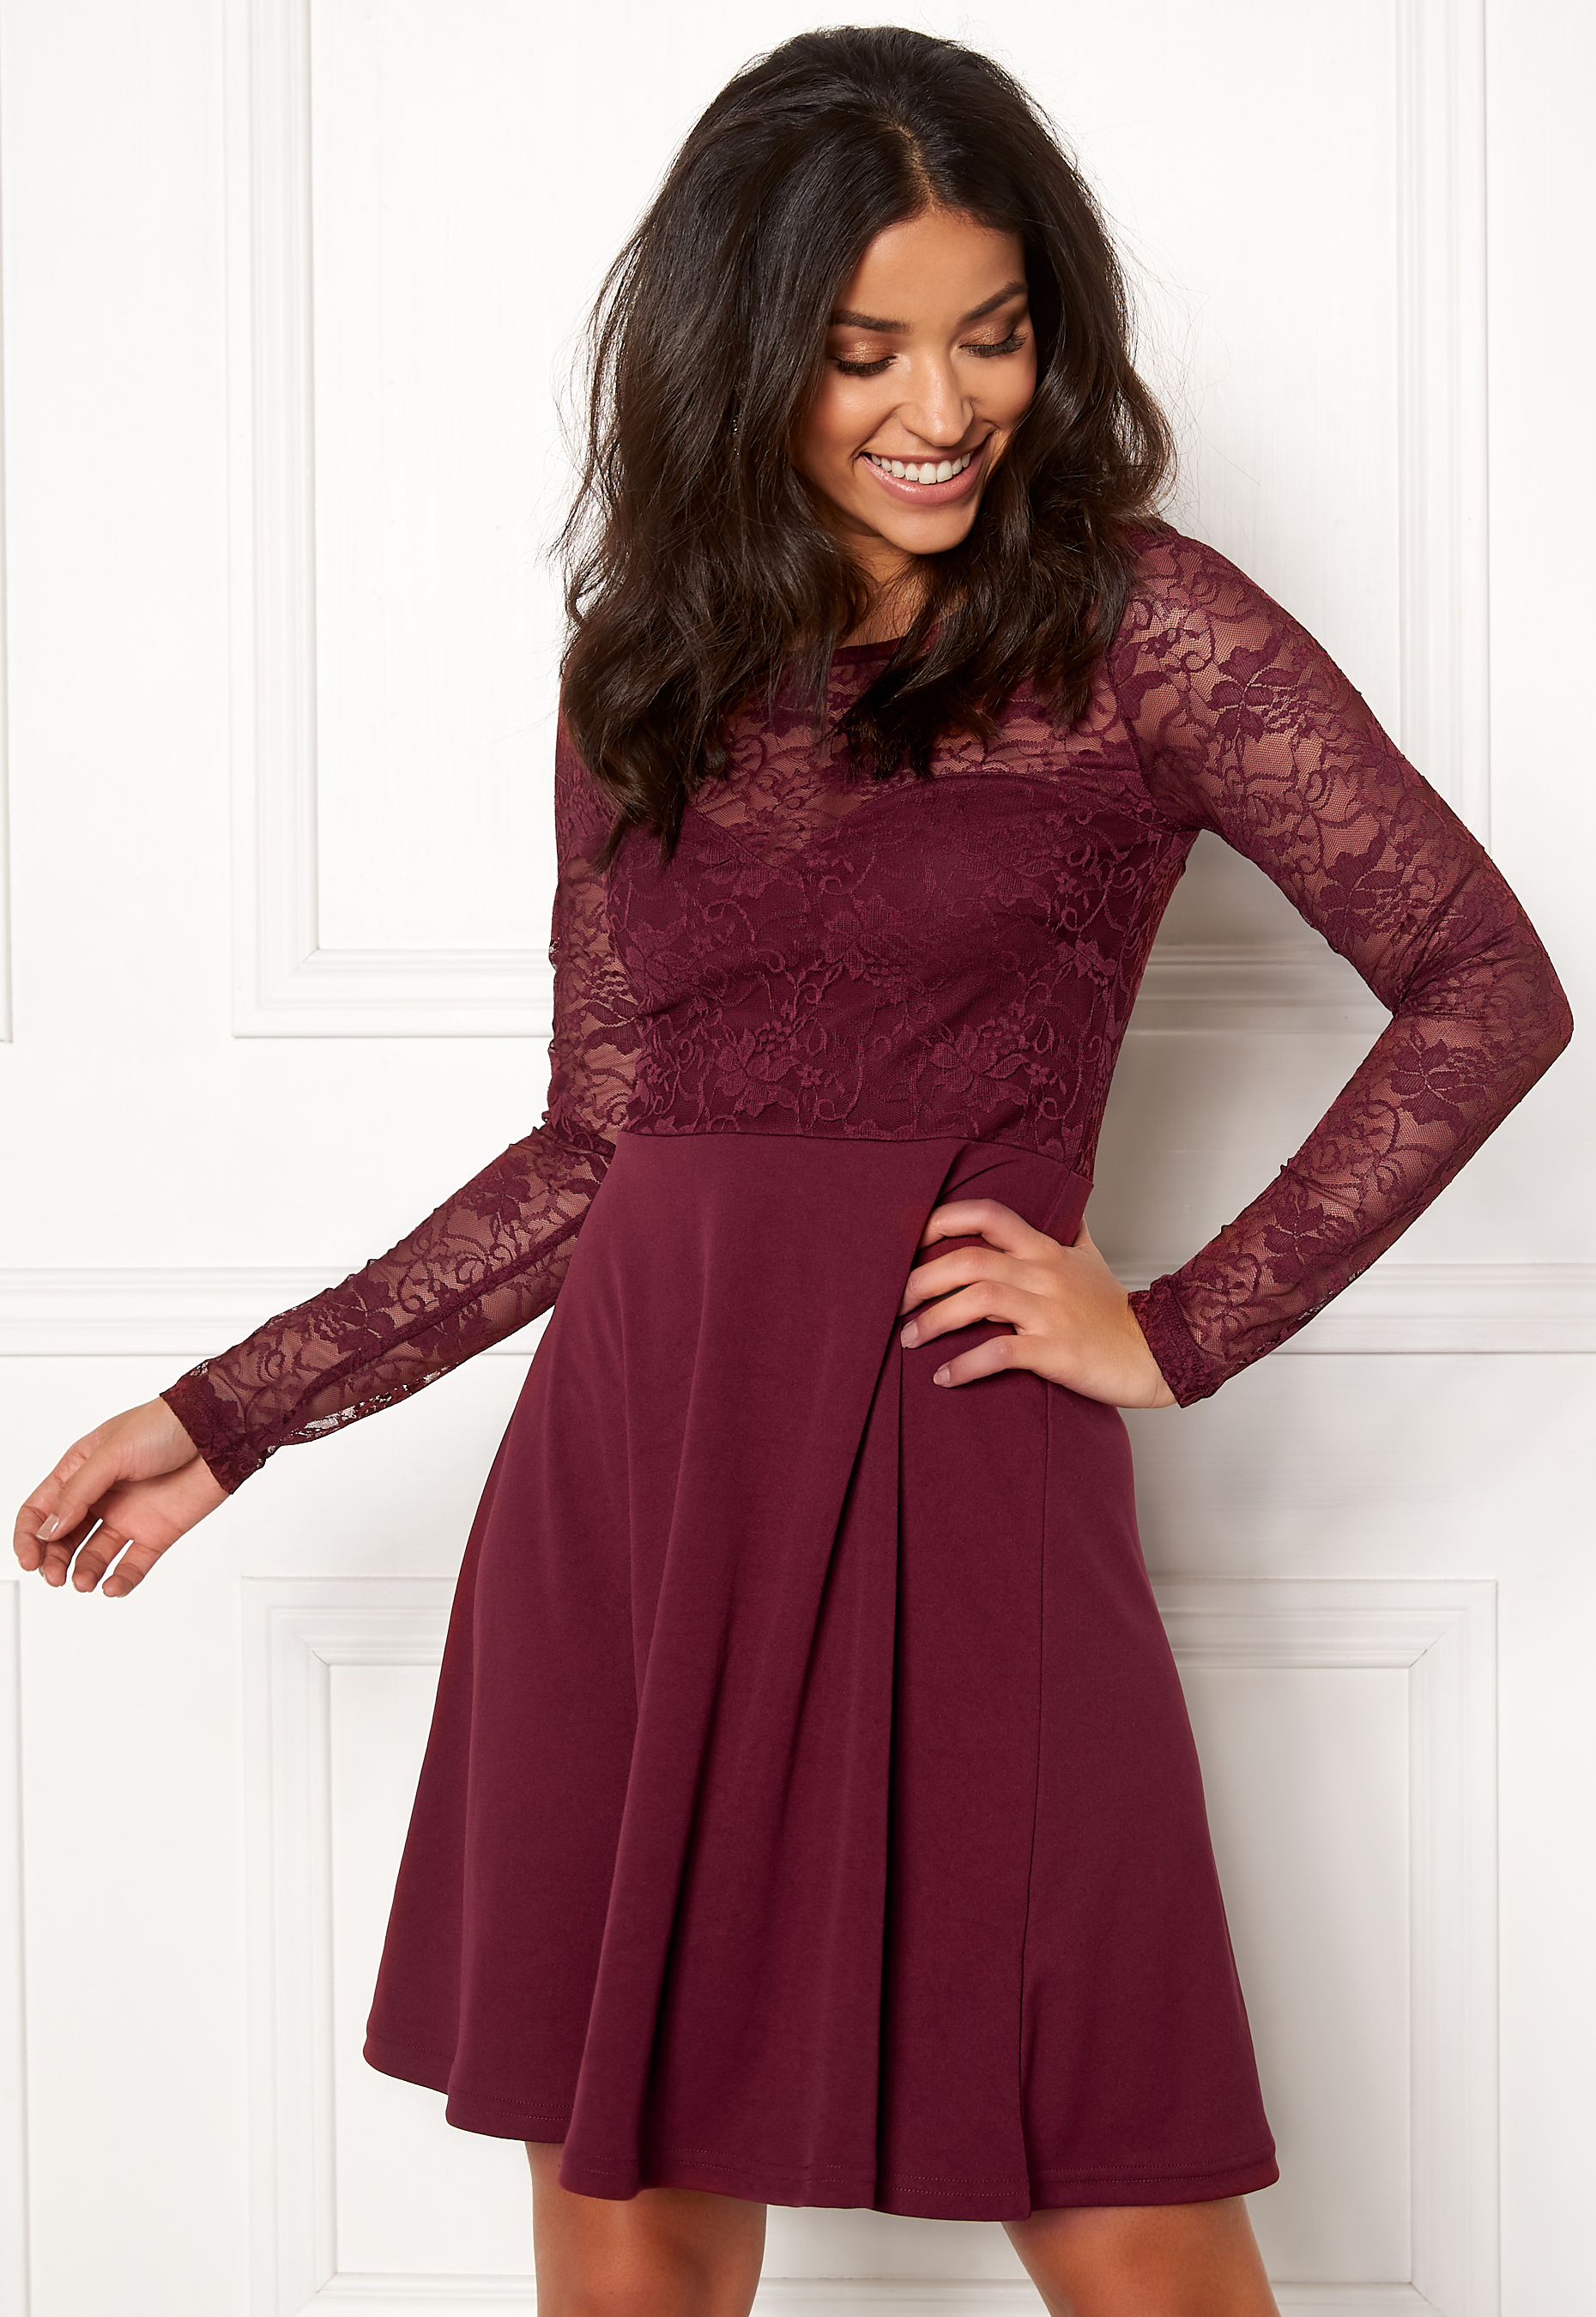 8058c793a57 BUBBLEROOM Grace lace dress Wine-red - Bubbleroom